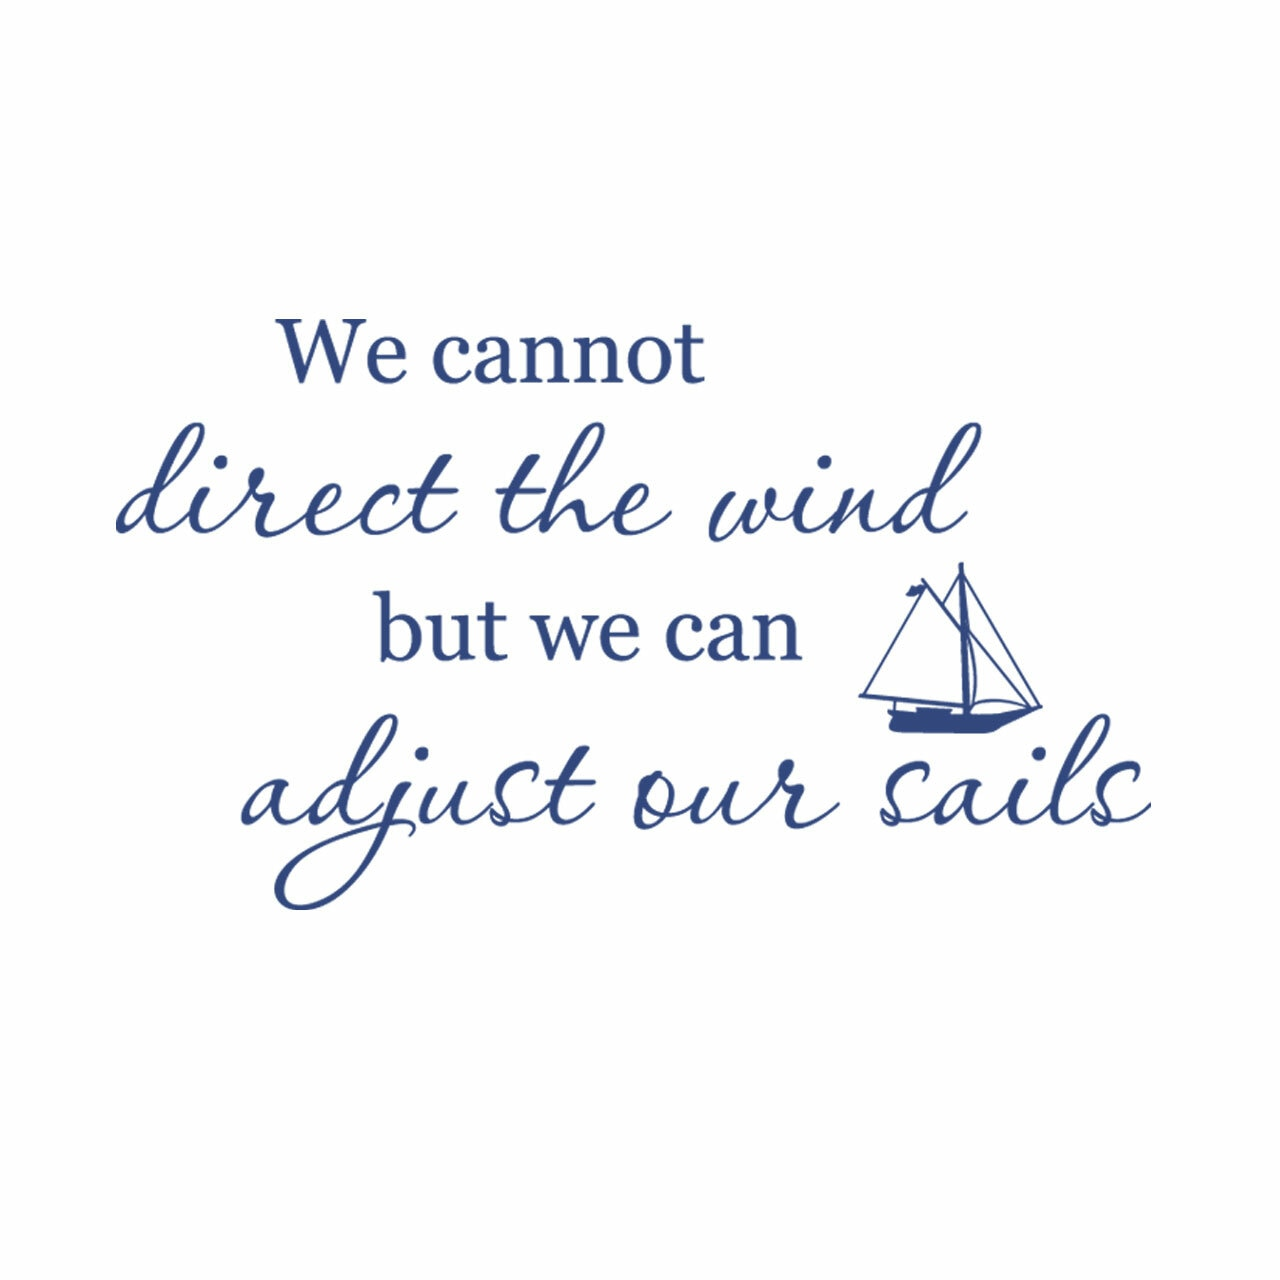 We cannot direct the wind but we can adjust our sails vinyl lettering in navy blue on a white background